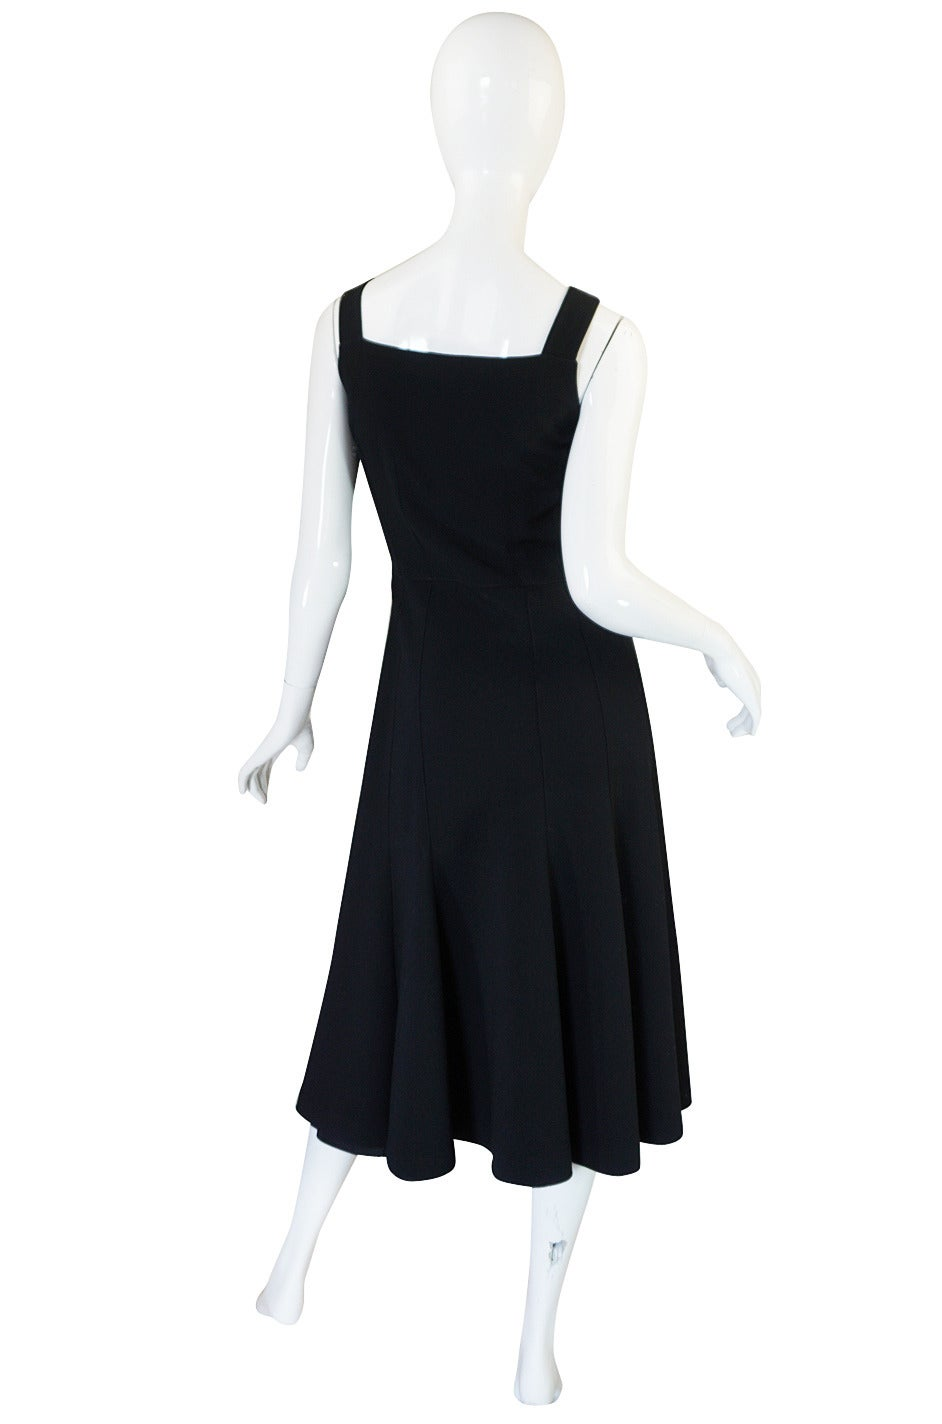 This wonderful black wool crepe Courreges dress can be worn on its own or styled in the manner of his signature look, with a top or turtleneck underneath. It is made from a light black wool crepe that moves well and is not heavy when on. It is cut